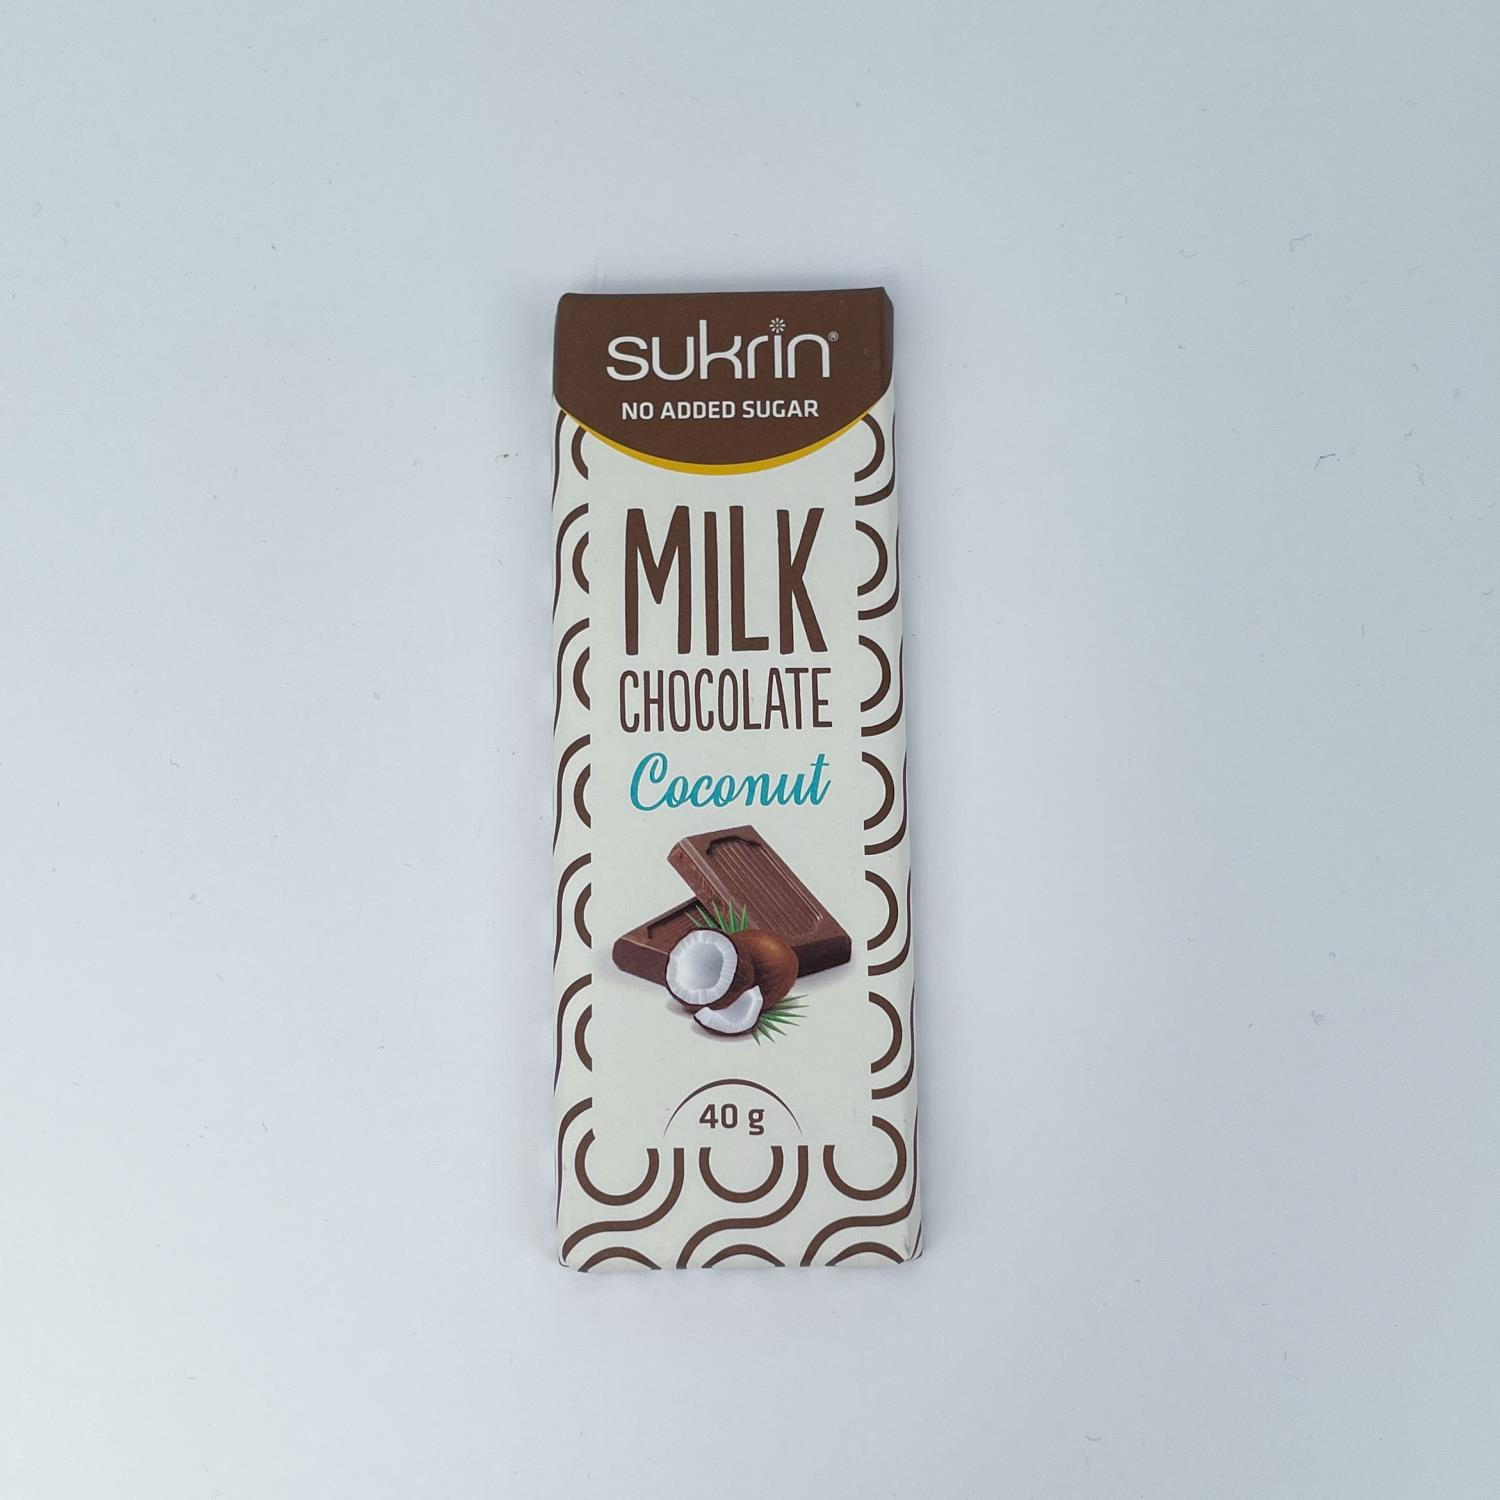 Sukrin Milk Chocolate Coconut